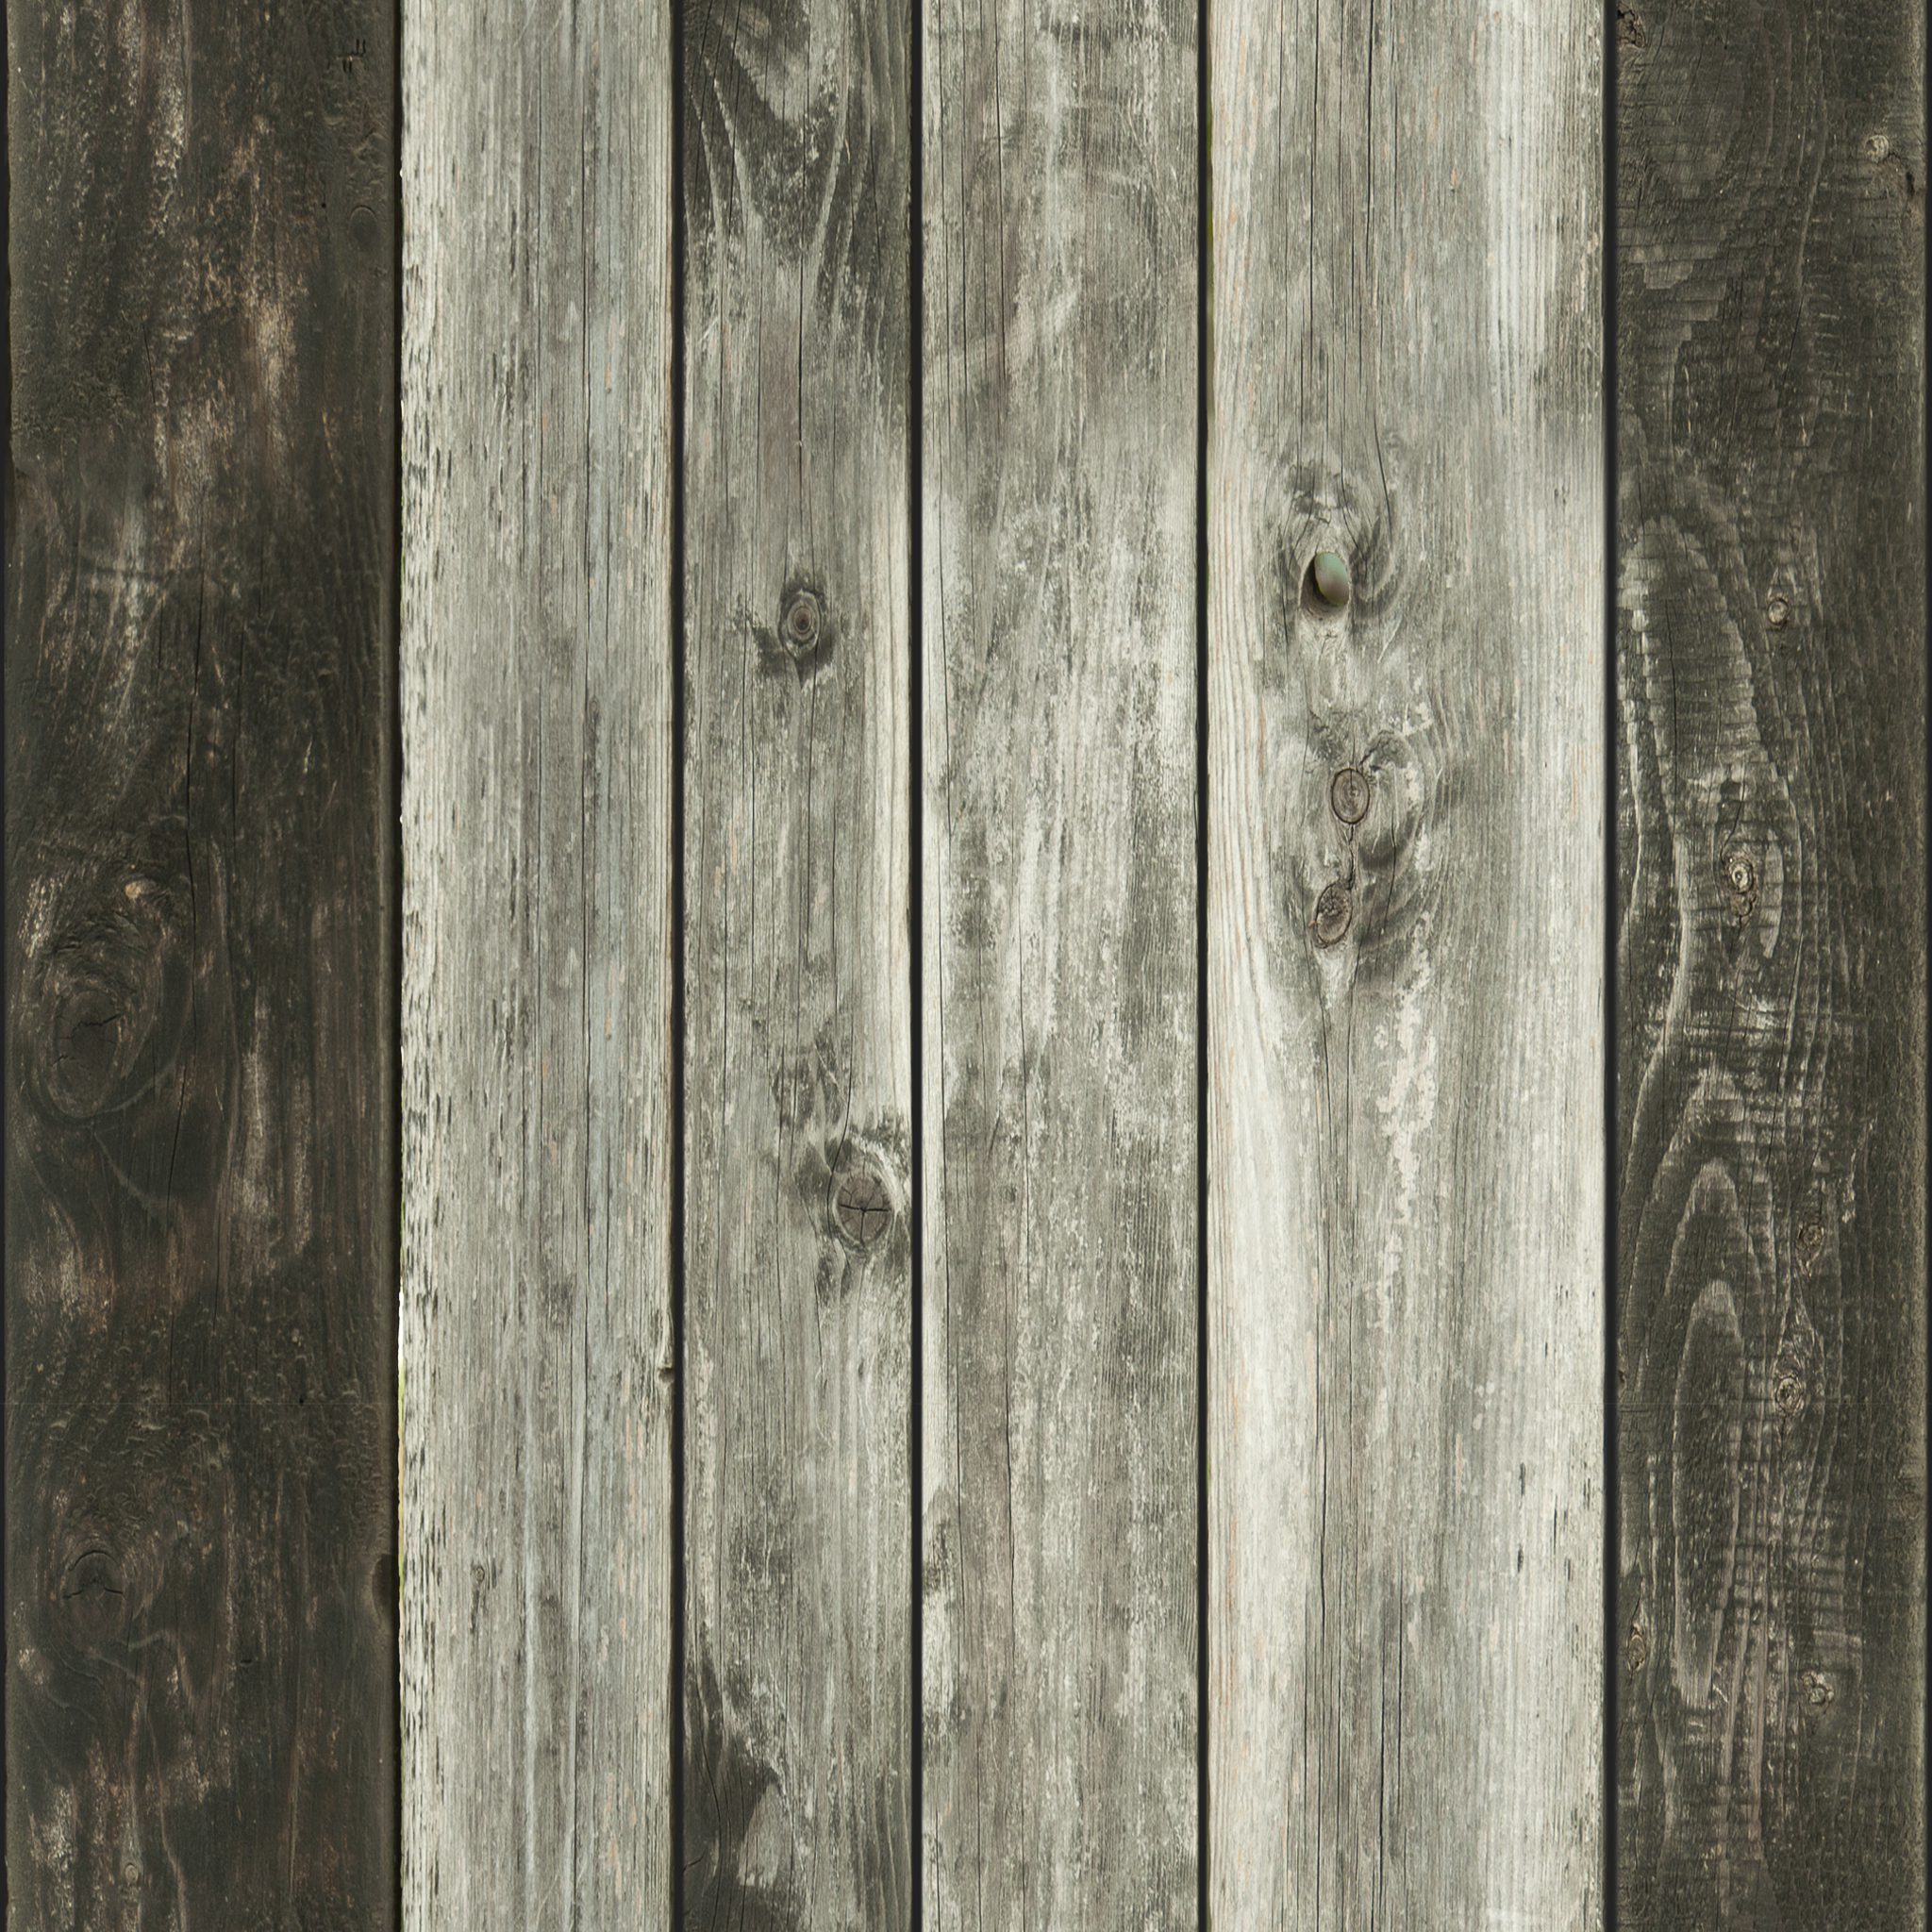 Antique Black Wood Fence.jpg